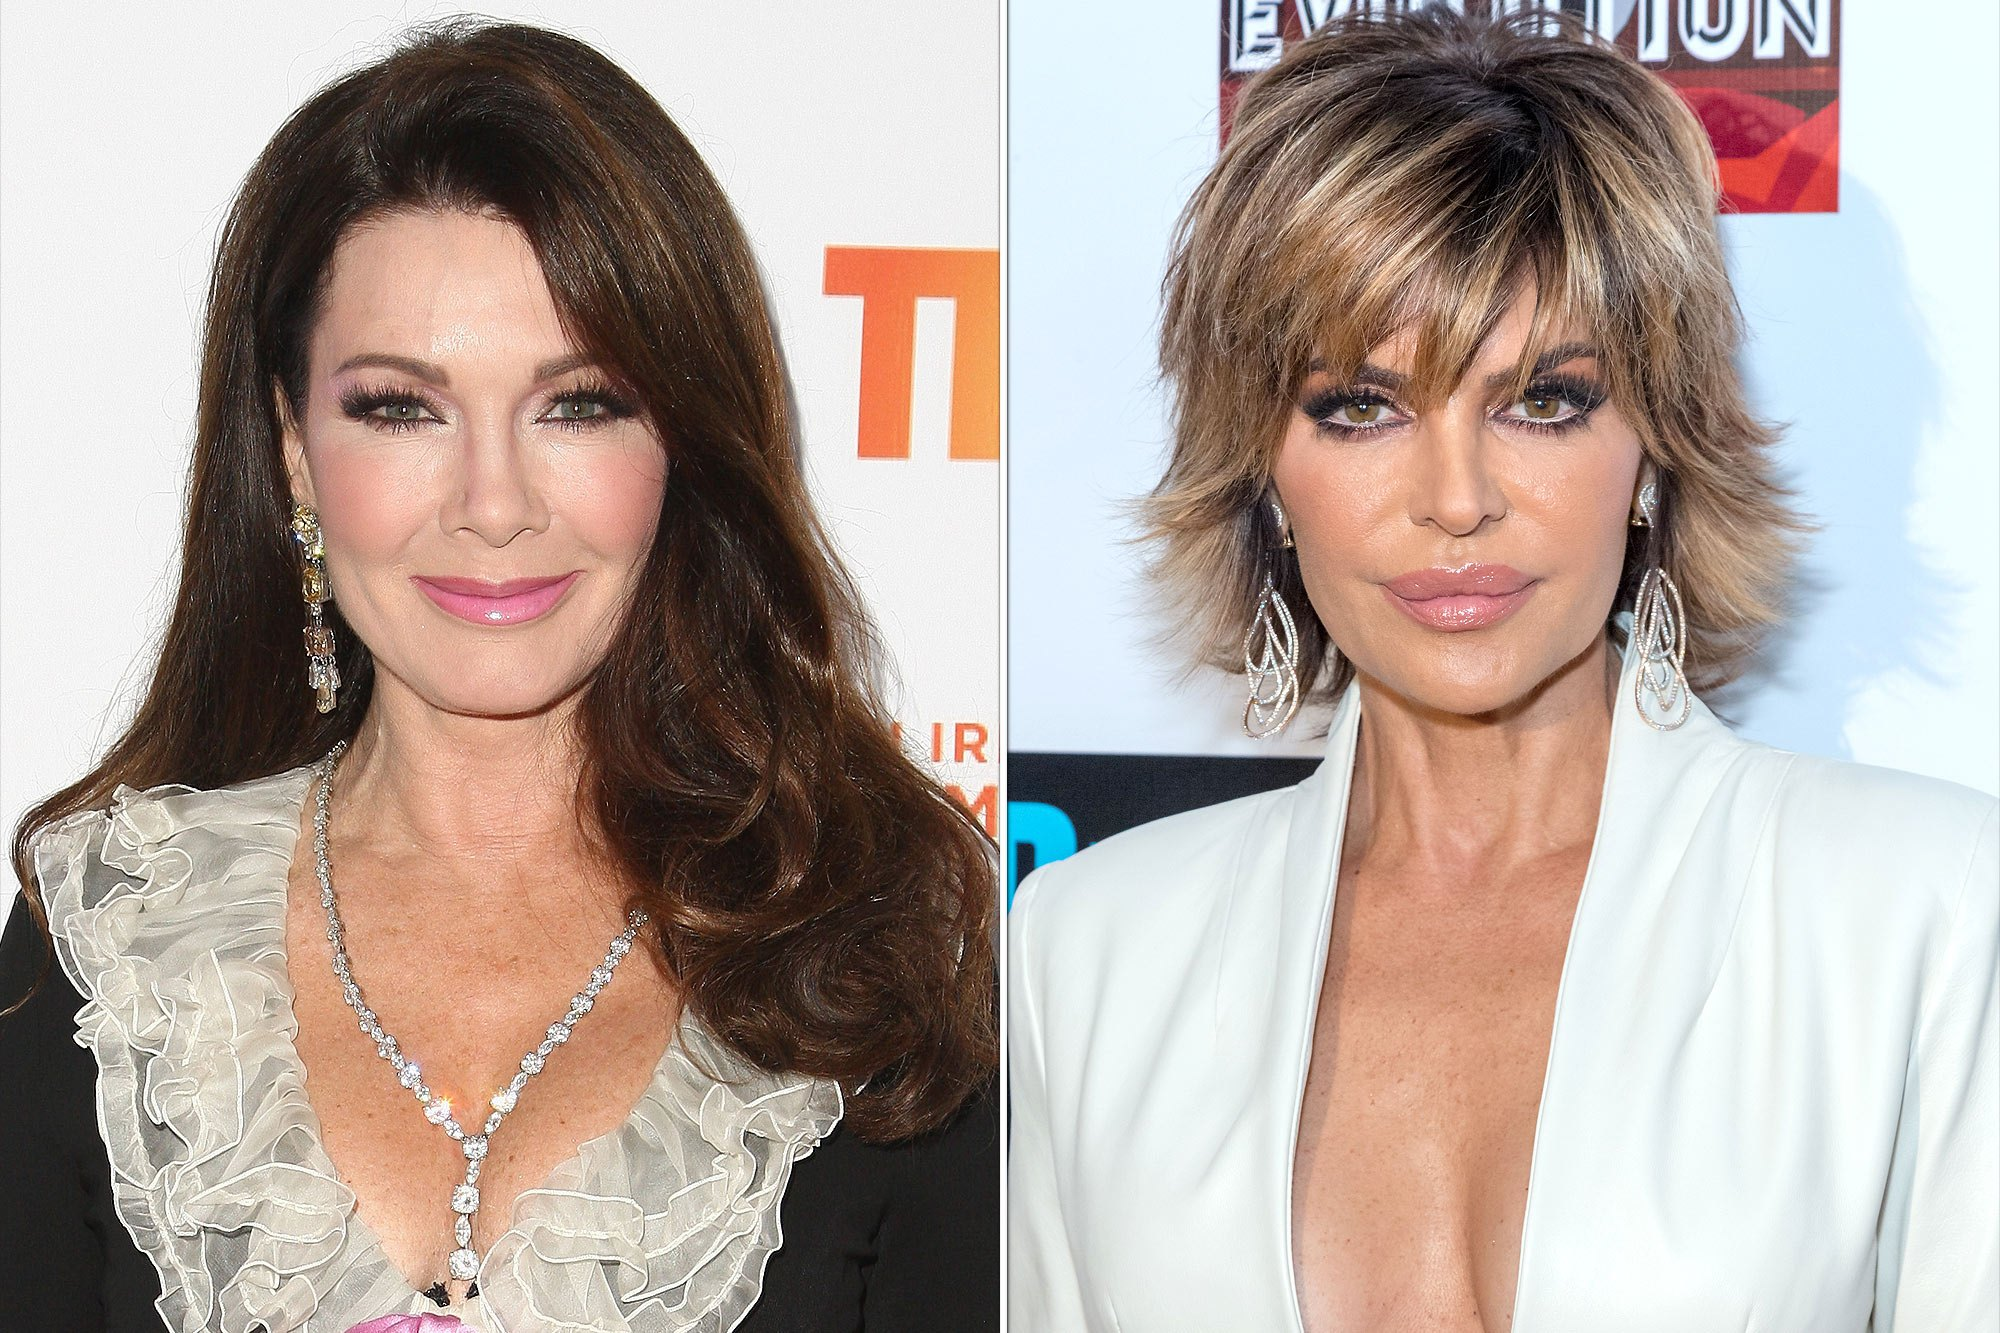 """lisa-rinna-says-lisa-vanderpump-gets-preferential-treatment-from-bravo-she-shouldve-been-fired-for-refusing-to-shoot-rhobh"""